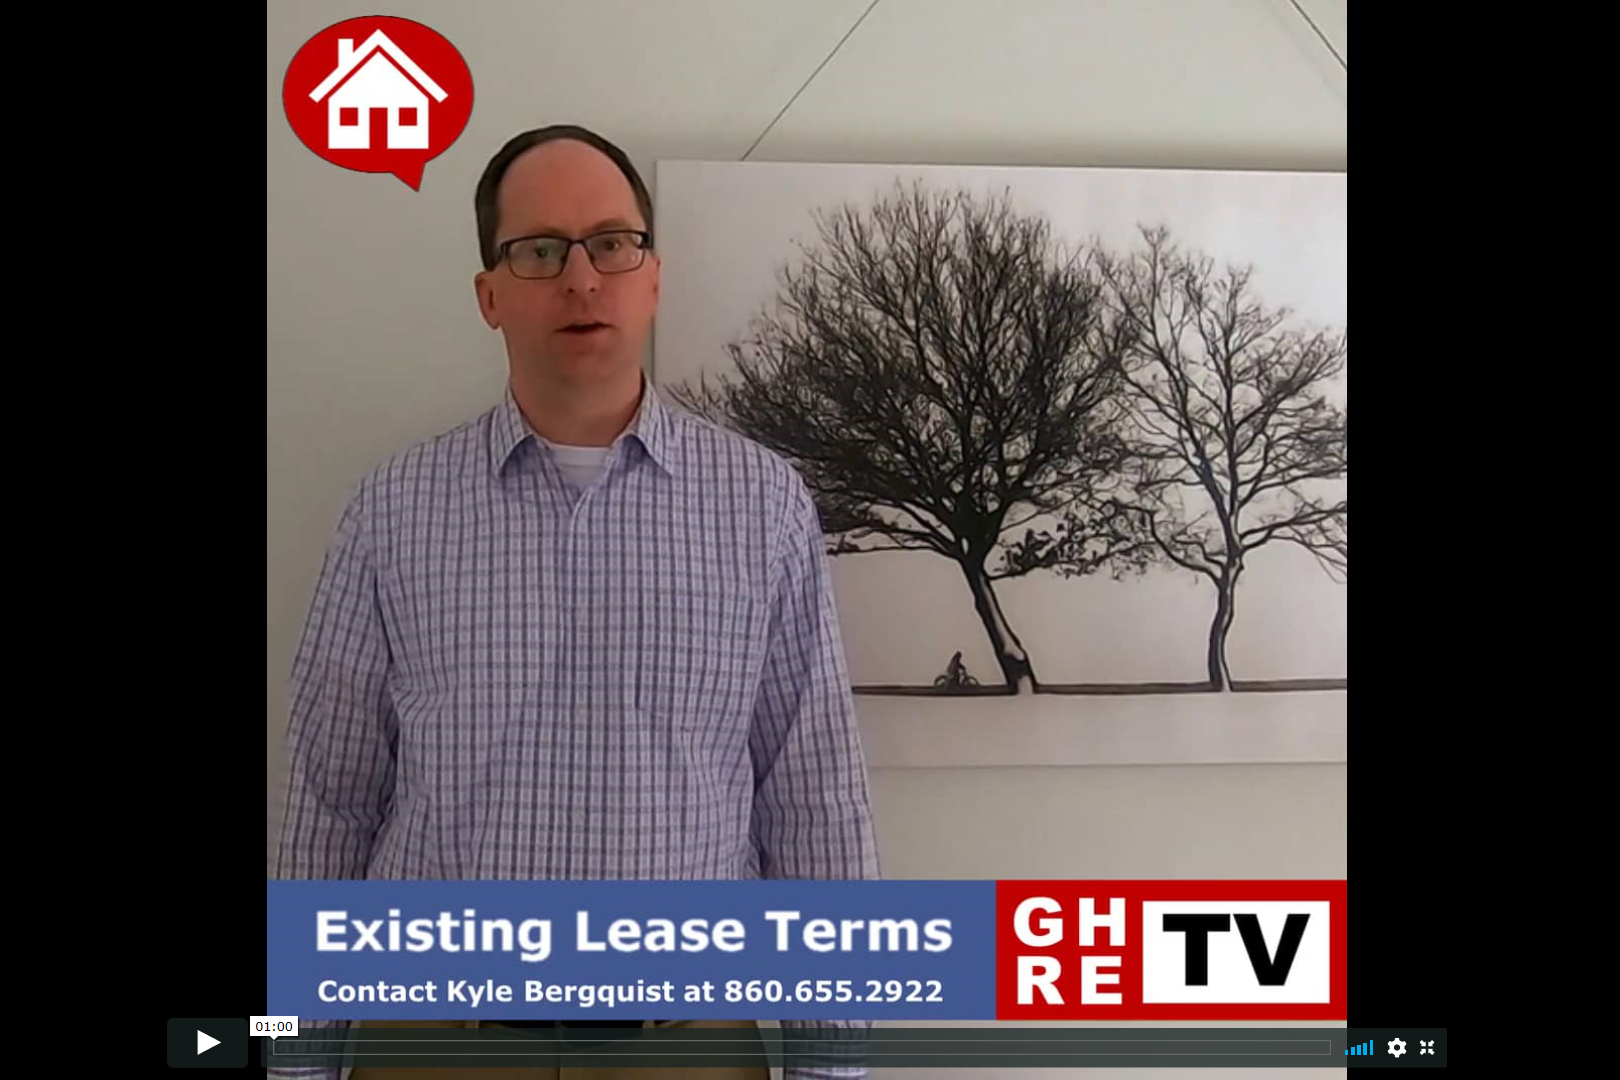 2020-02-04 R2B - Existing Lease Terms